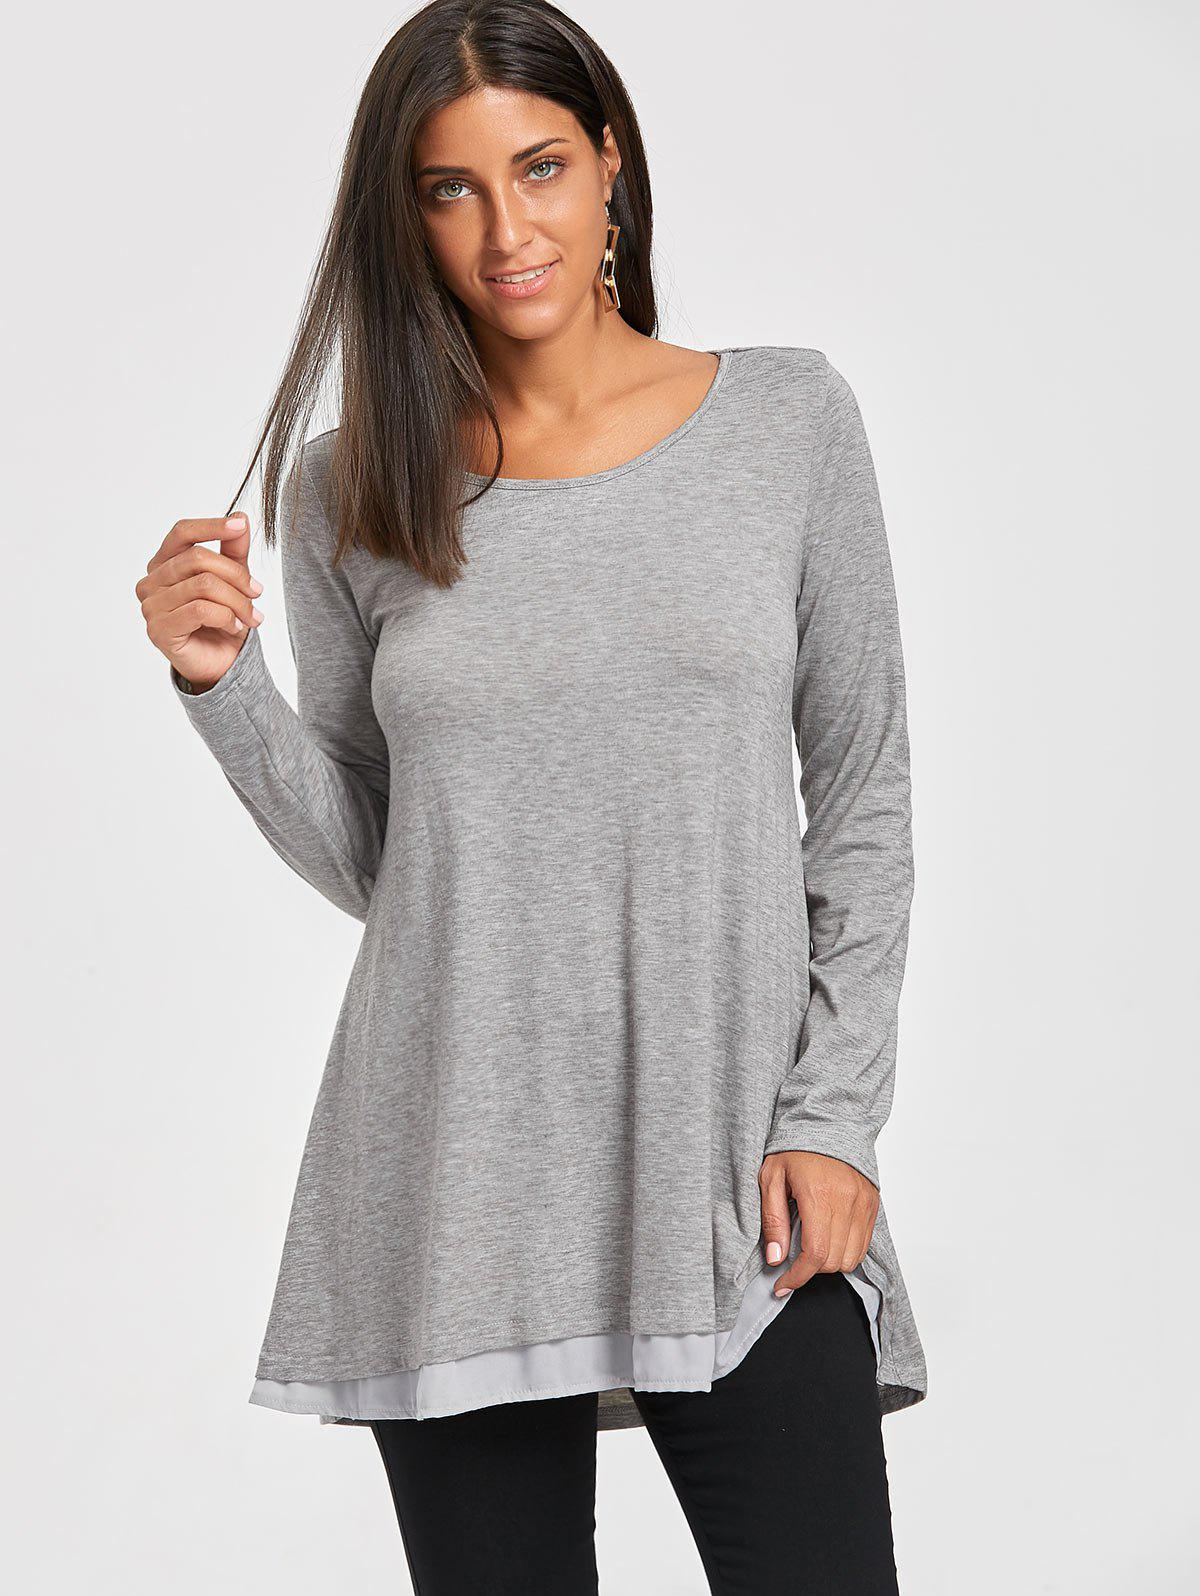 Chiffon Trimmed Scoop Neck Tunic Top - GRAY XL